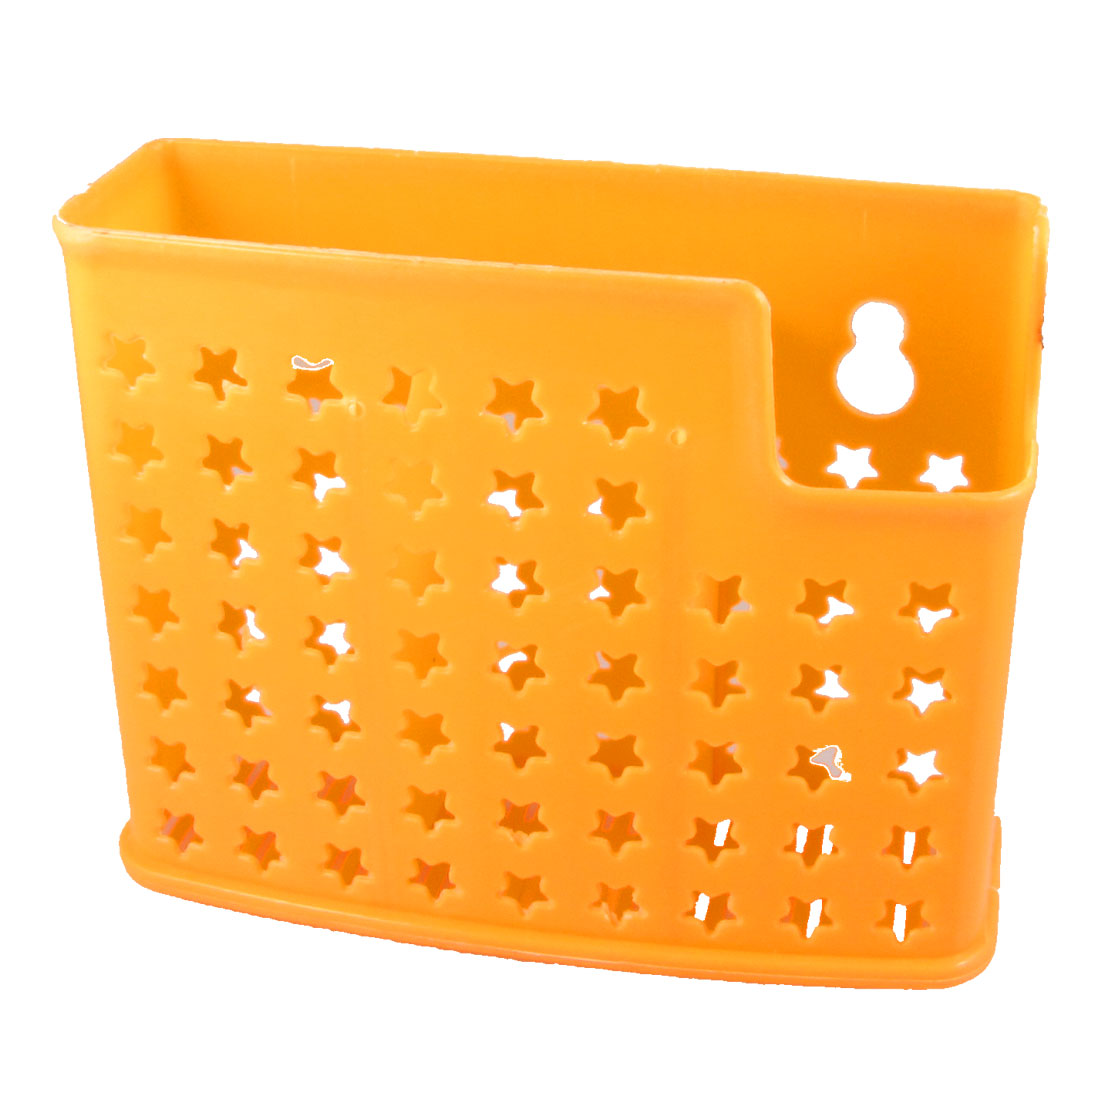 Hollow Star Perforating 3 Compartments Plastic Chopsticks Box Cage Holder Orange